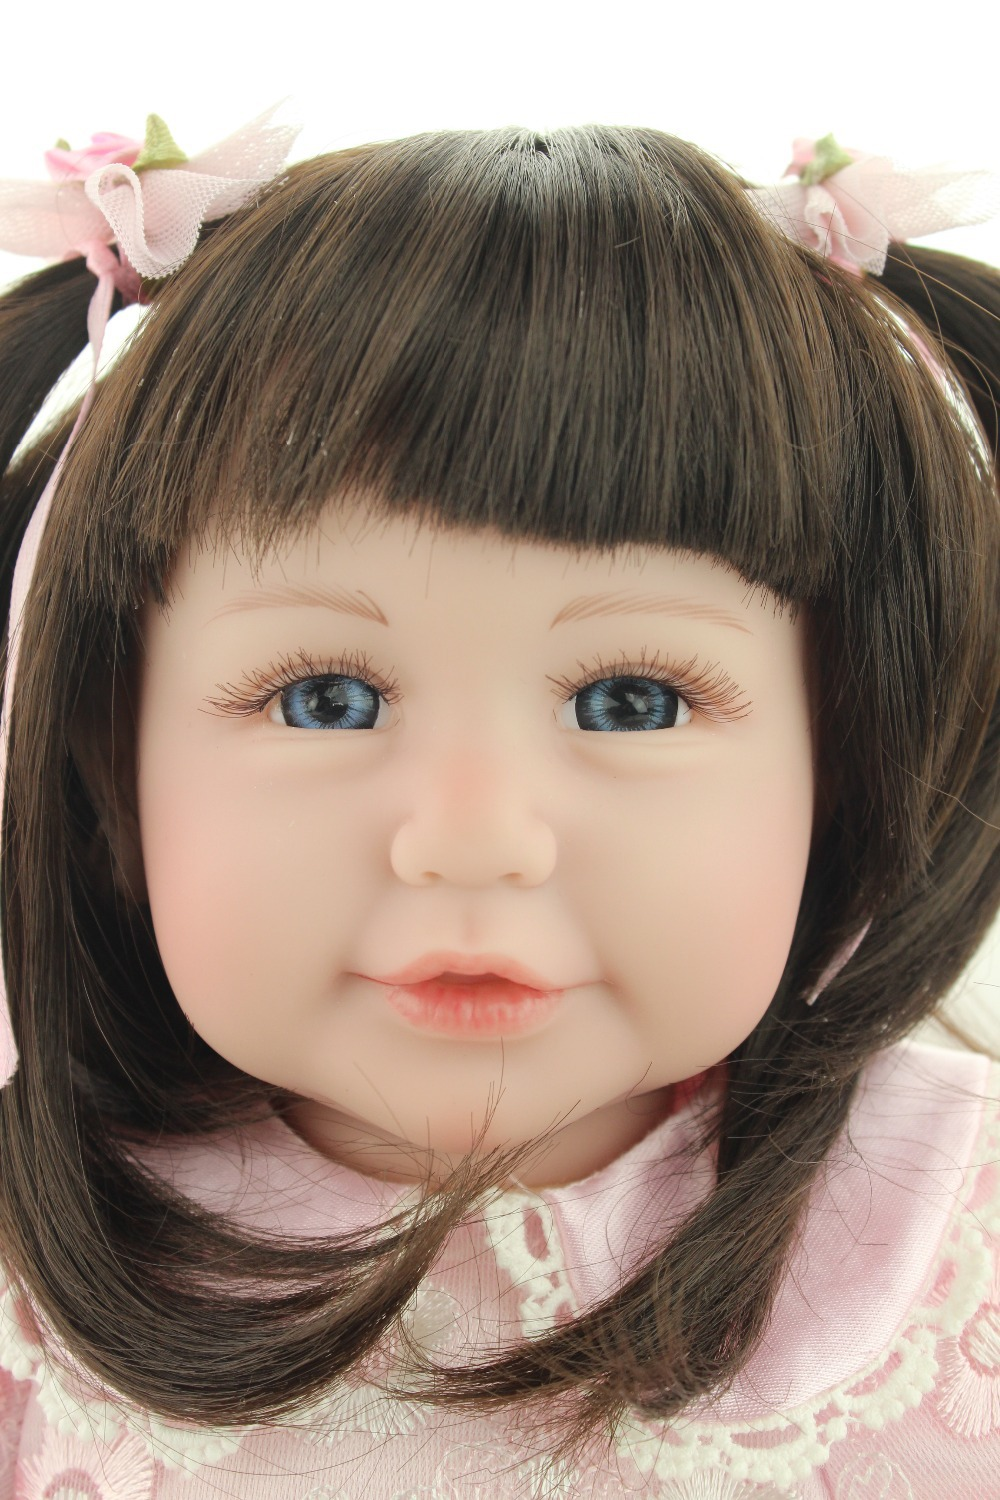 Reborn toddler girl doll sweet baby doll Birthday Gift Toys for Girls 50cm , 20inch curls hair beautiful doll 22 inches sweet girl dolls brown hair 55cm doll reborn baby lovely toys cute birthday gift for girls as american girl